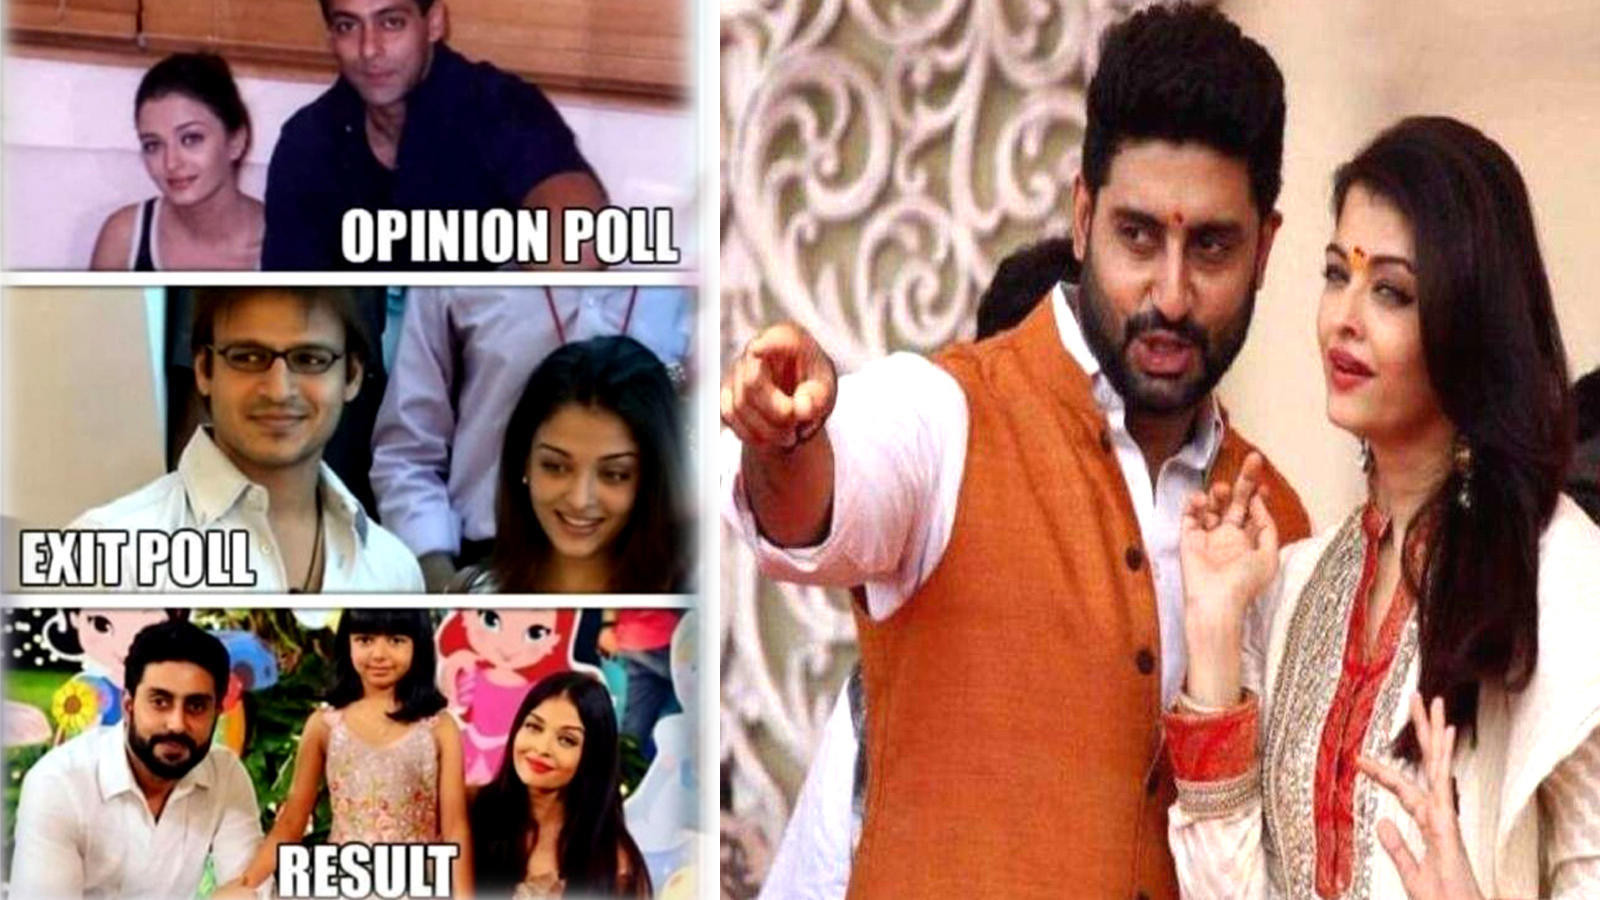 netizens-ask-abhishek-bachchan-to-take-a-stand-for-his-wife-aishwarya-rai-bachchan-in-vivek-oberoi-meme-controversy